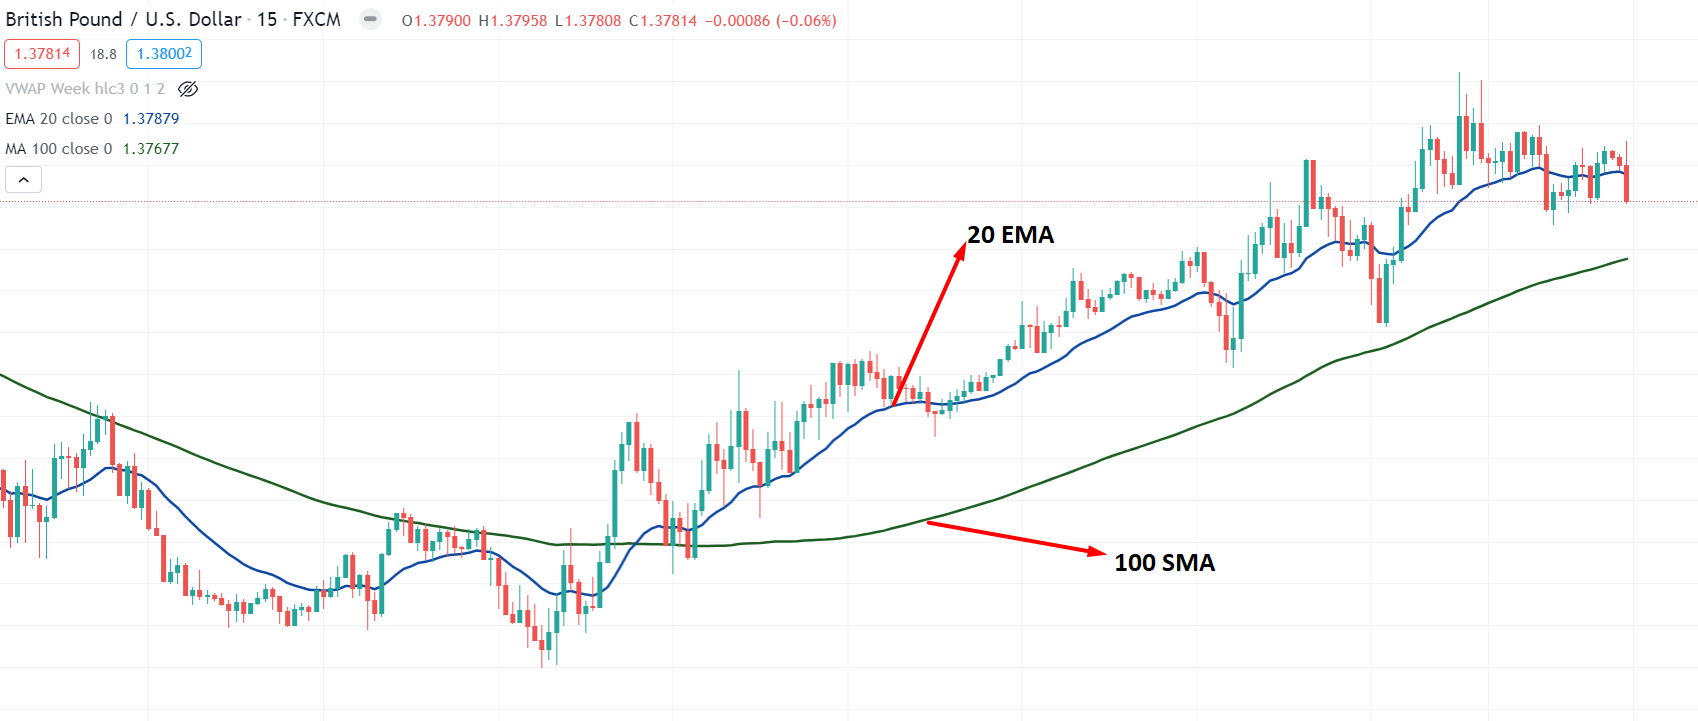 This fig shows two different valued MA at the GBP/USD daily chart.